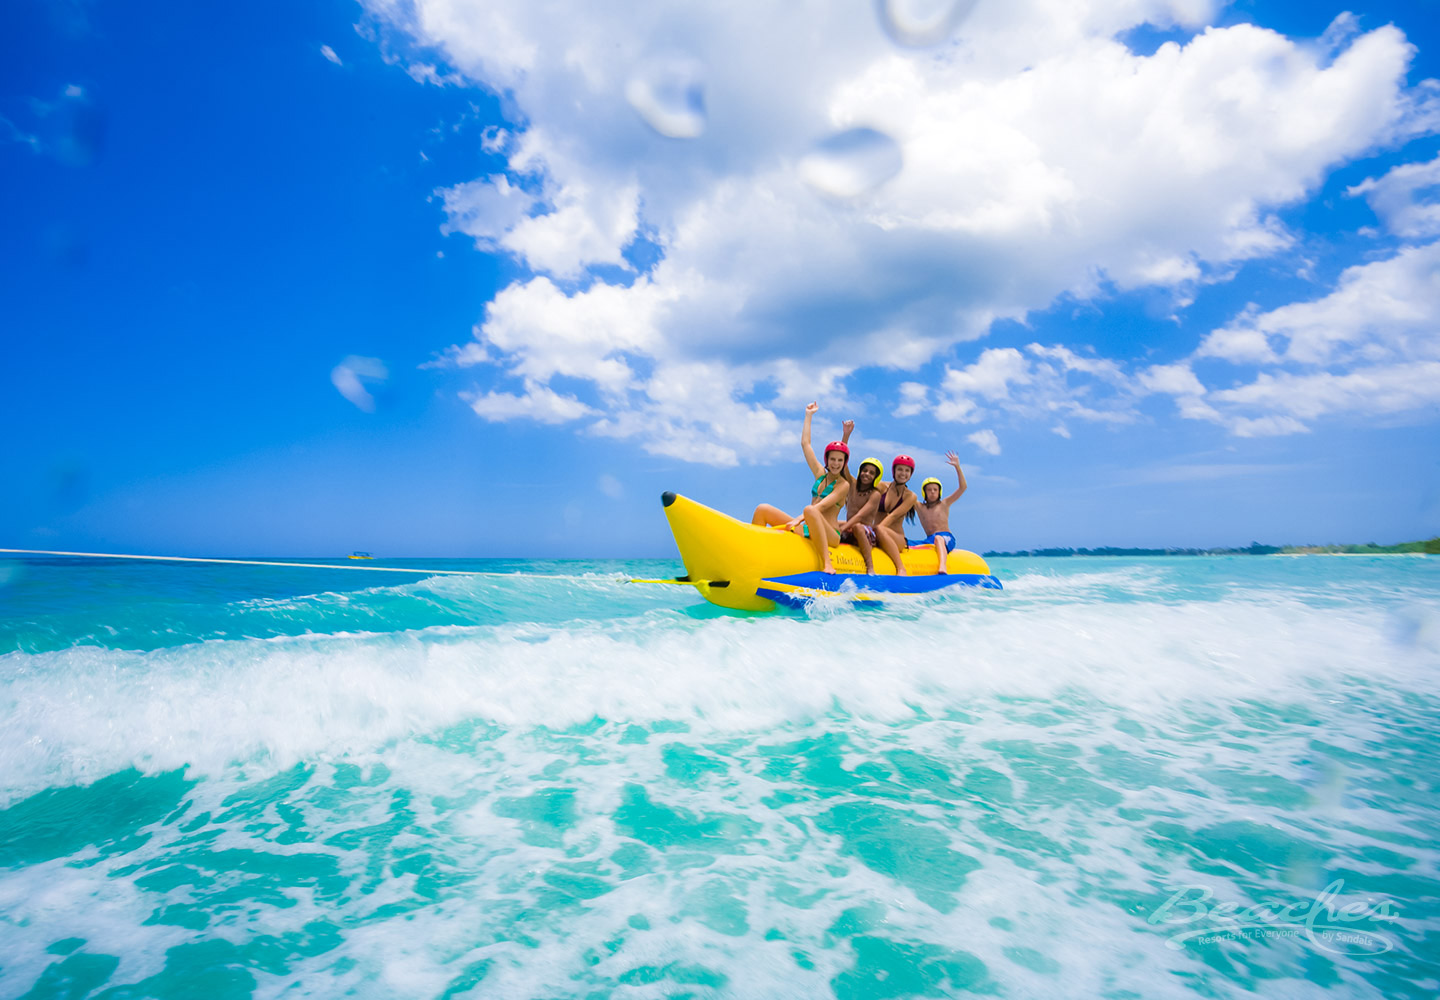 Travel Agency All-Inclusive Resort Beaches Negril 060